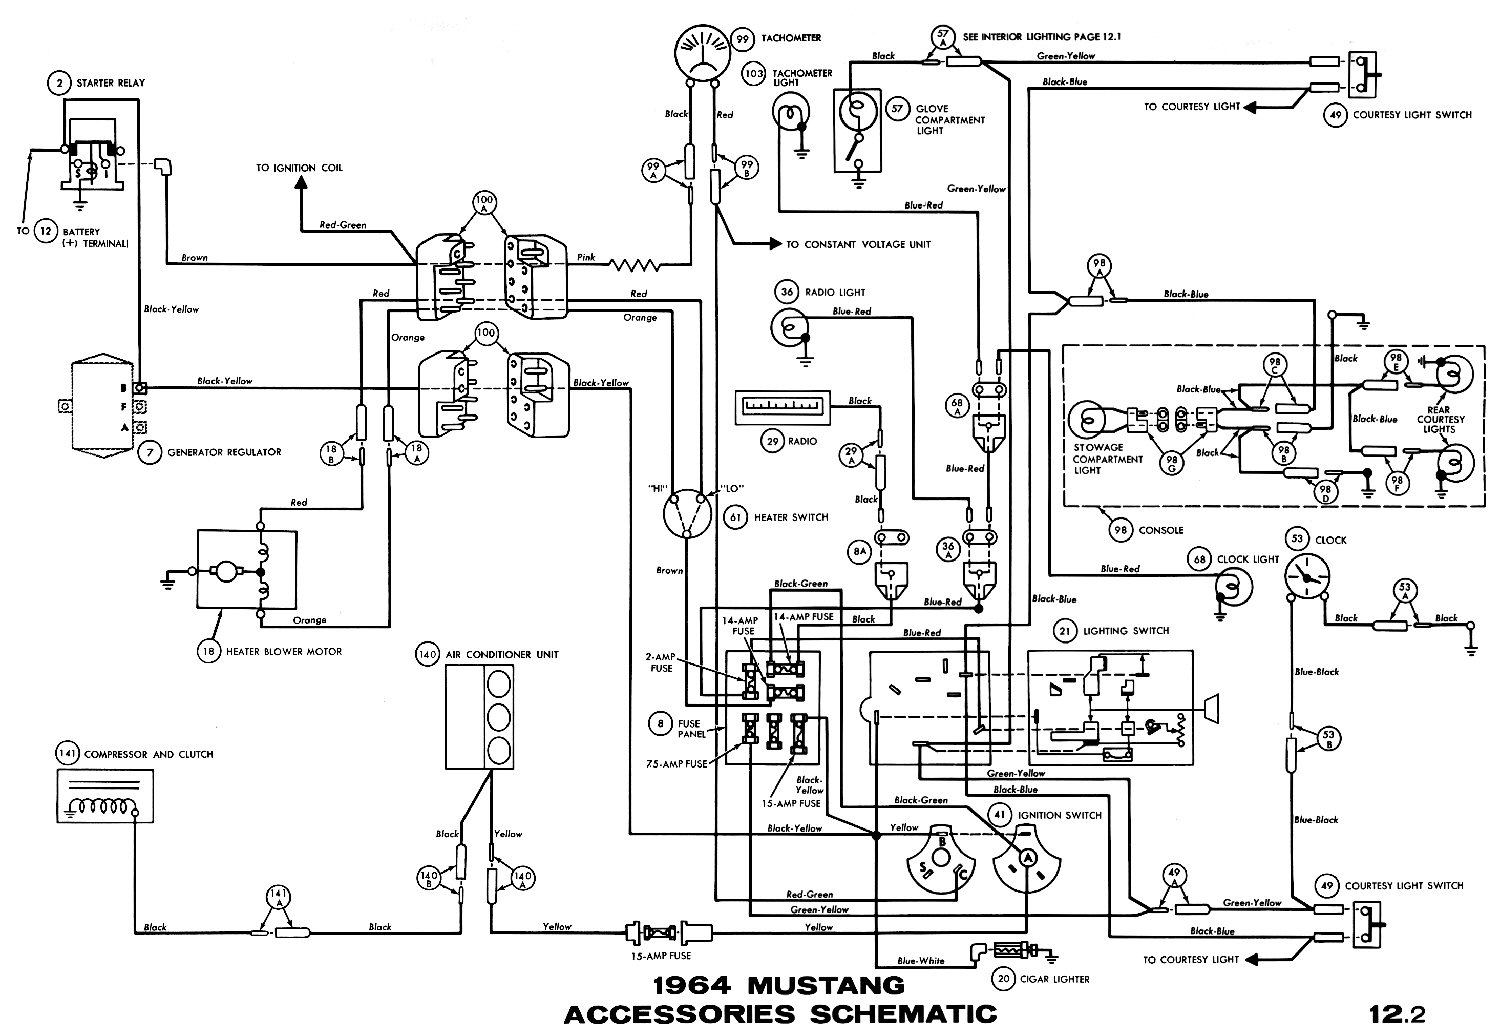 1964m 2015 mustang wiring diagram schematic mustang 2015 \u2022 free wiring 1970 ford mustang ignition switch wiring diagram at bayanpartner.co